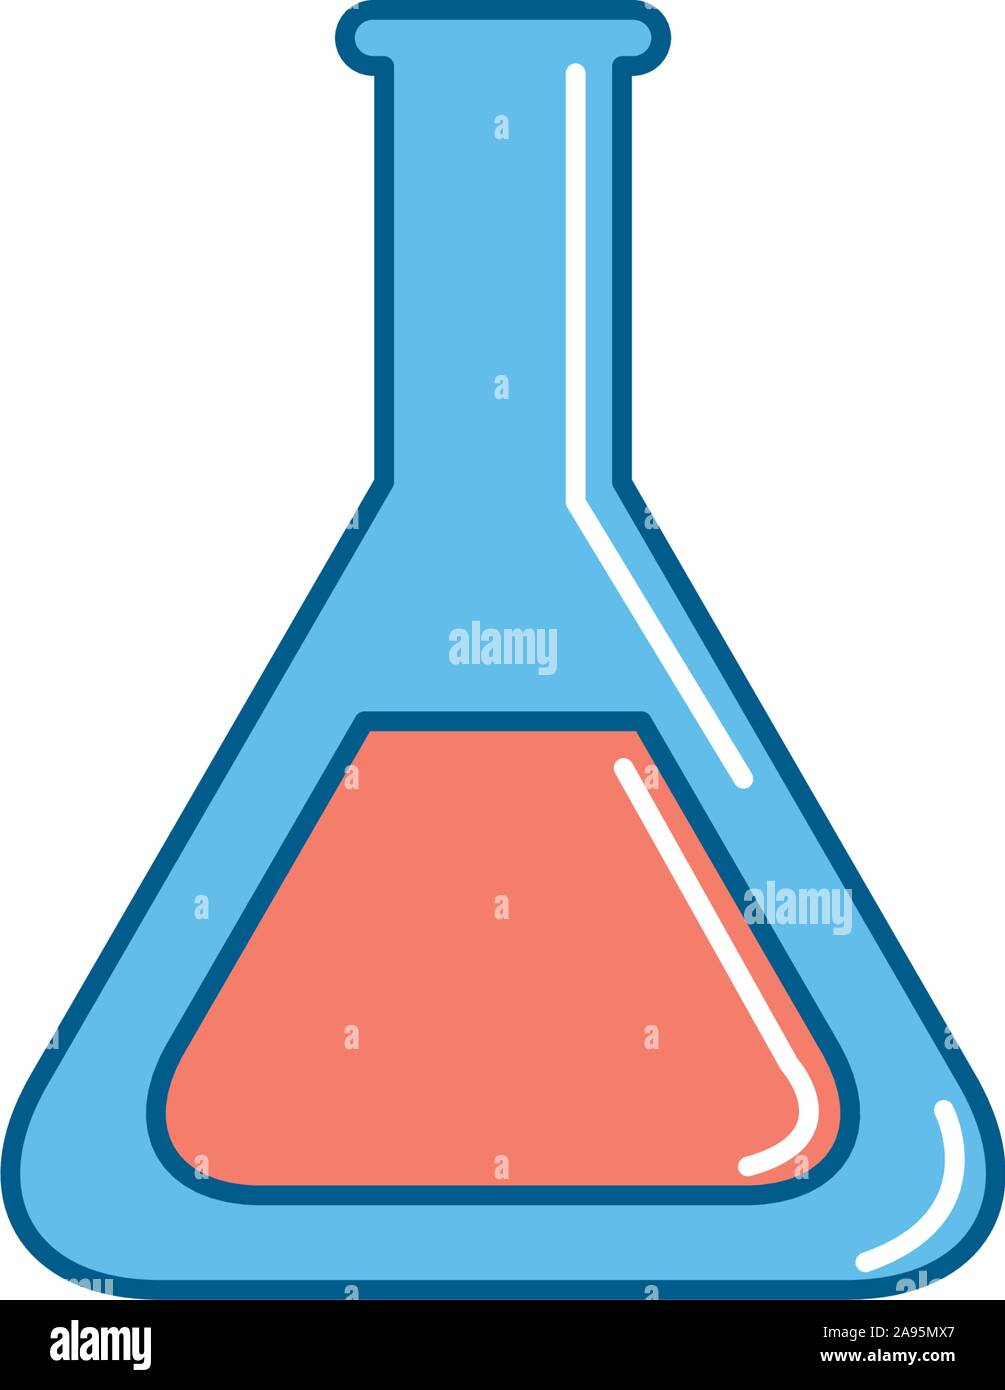 Flask icon design, Substance science laboratory chemistry research technology and biology theme Vector illustration Stock Vector